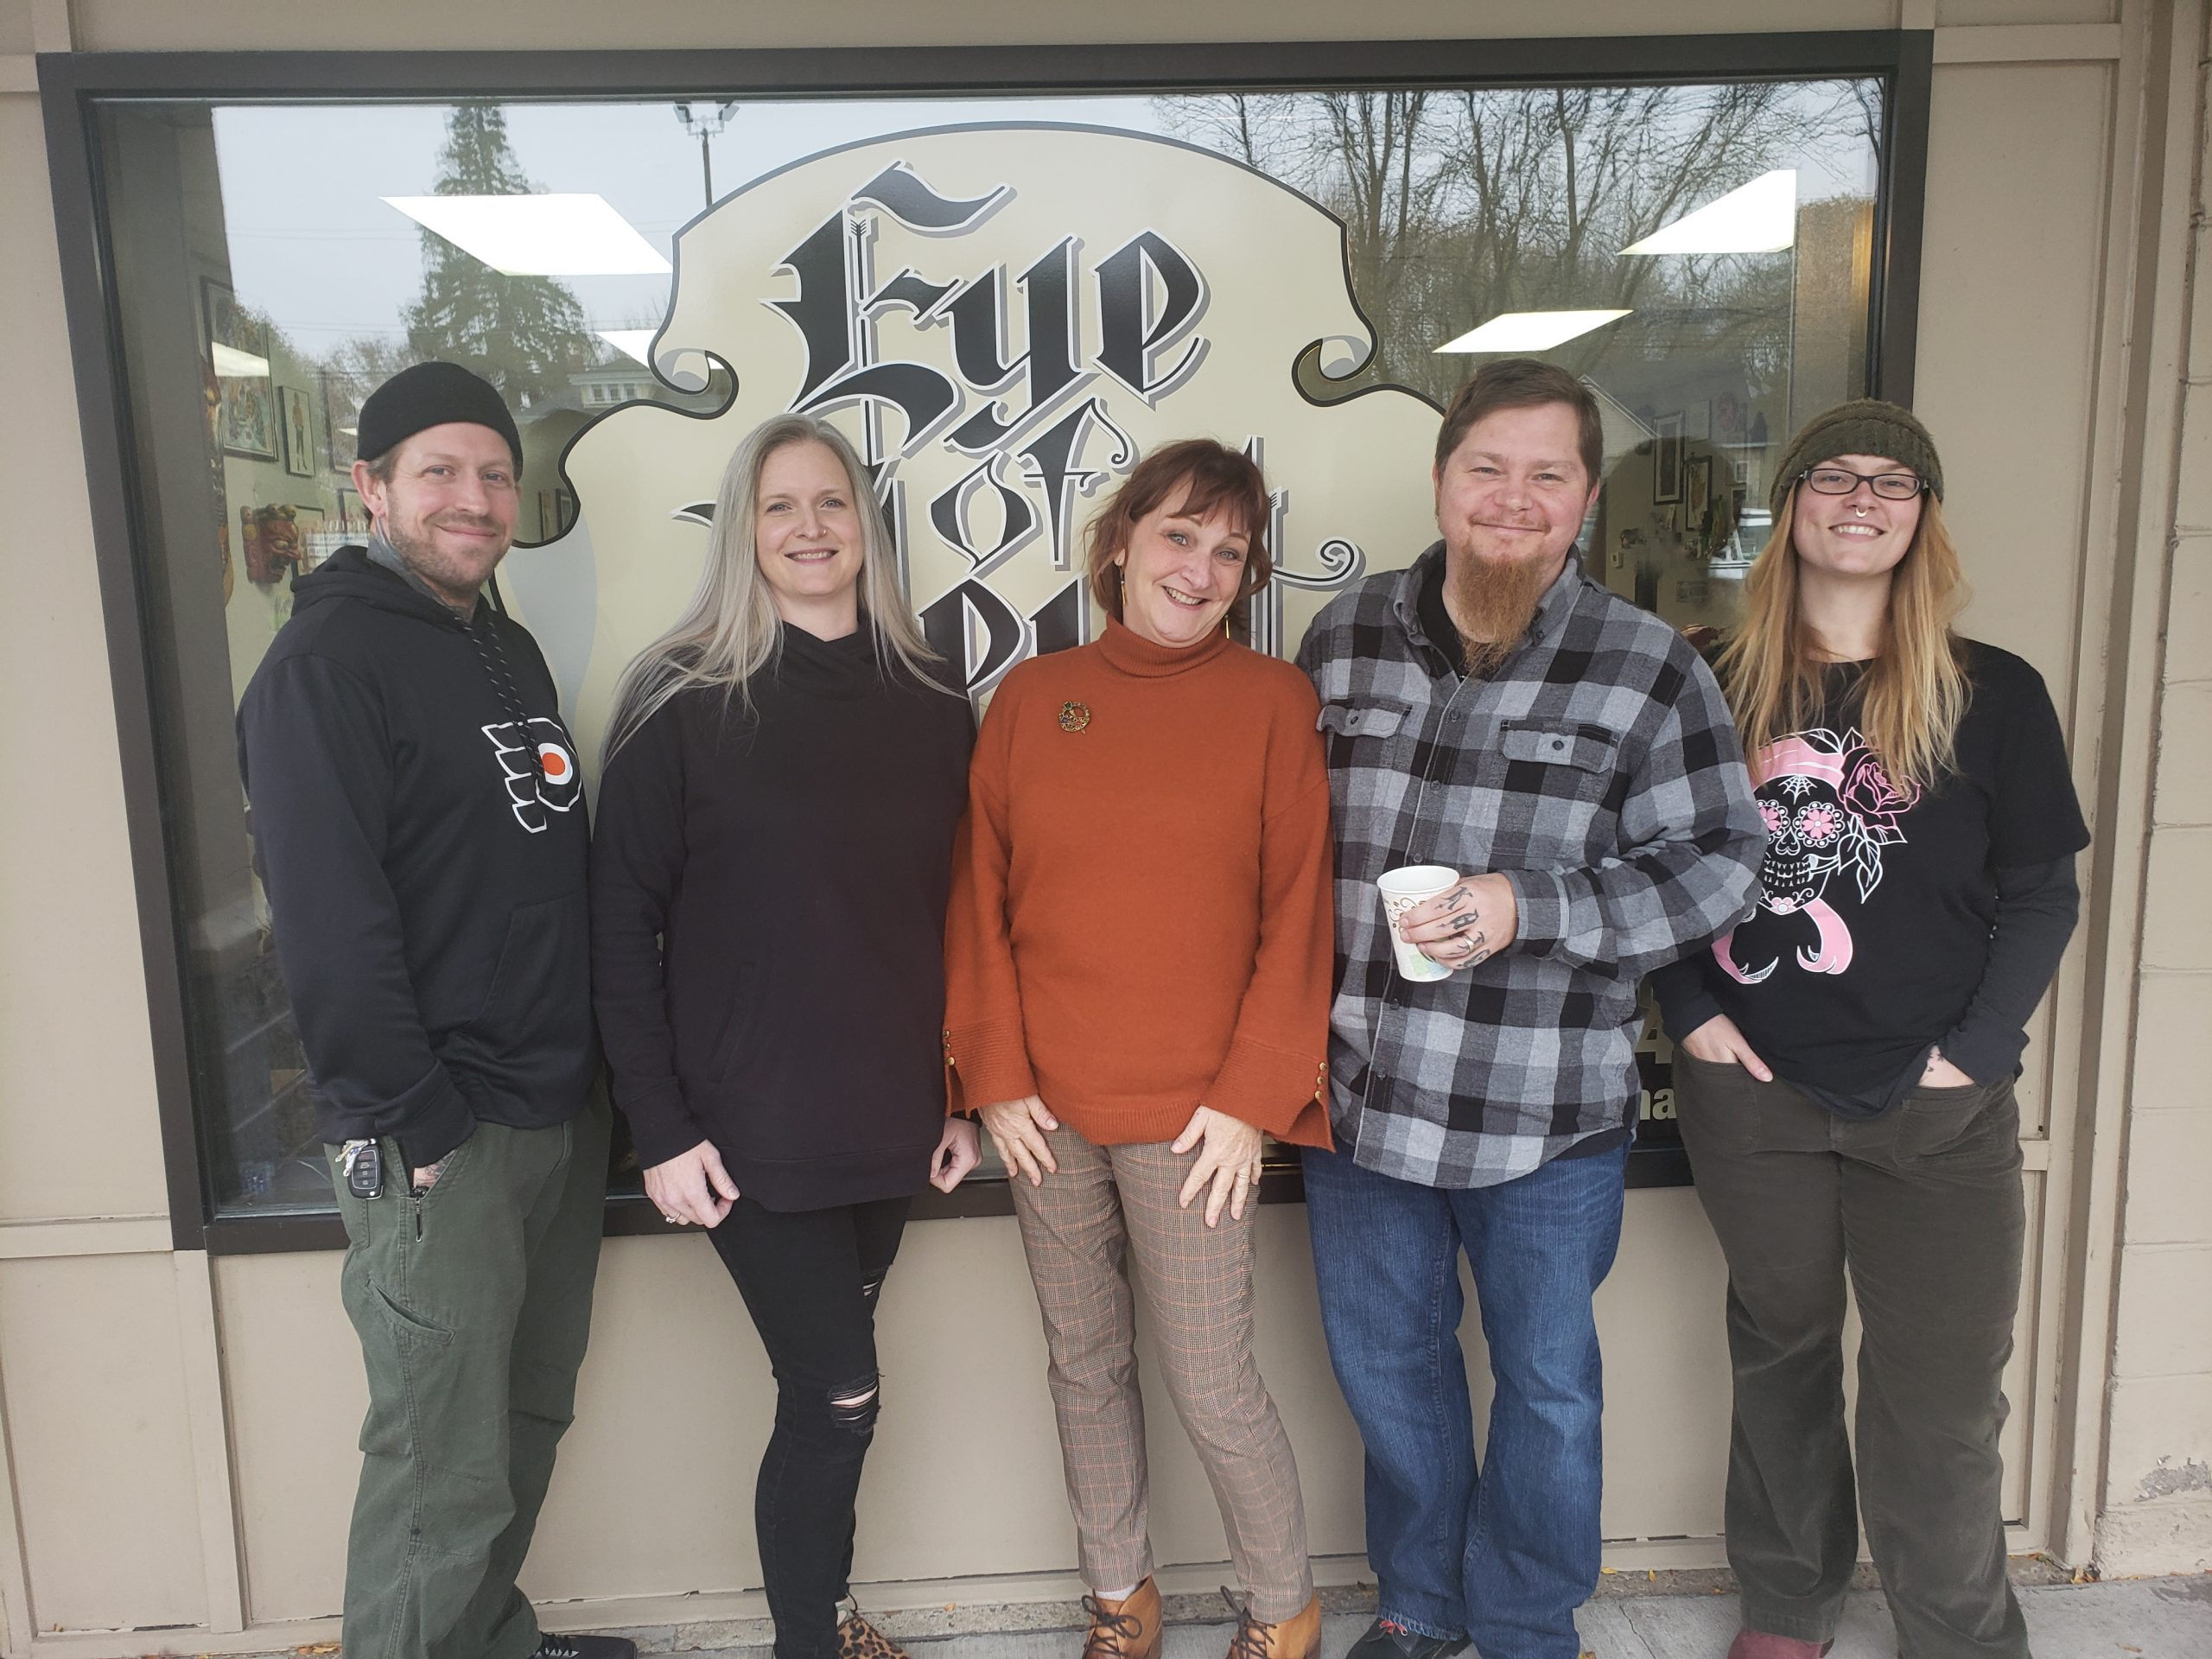 Eye of Newt Tattoo honors a family member with a fundraiser benefiting the Coalition.